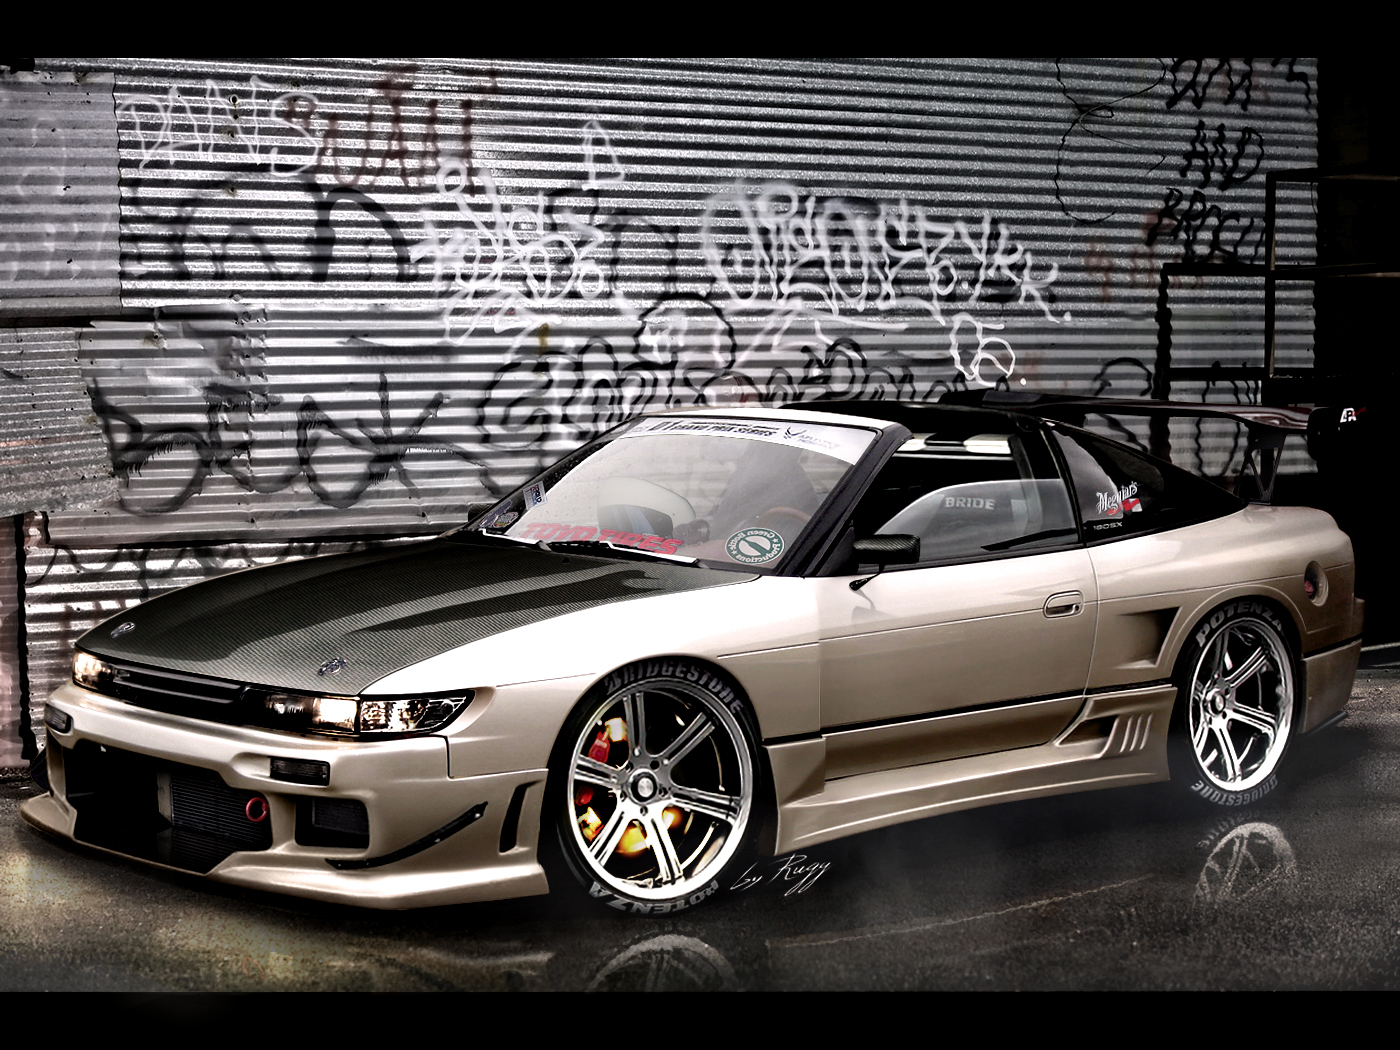 Pimped Out Cars Wallpapers Nissan Silvia Hd Wallpapers Pulse